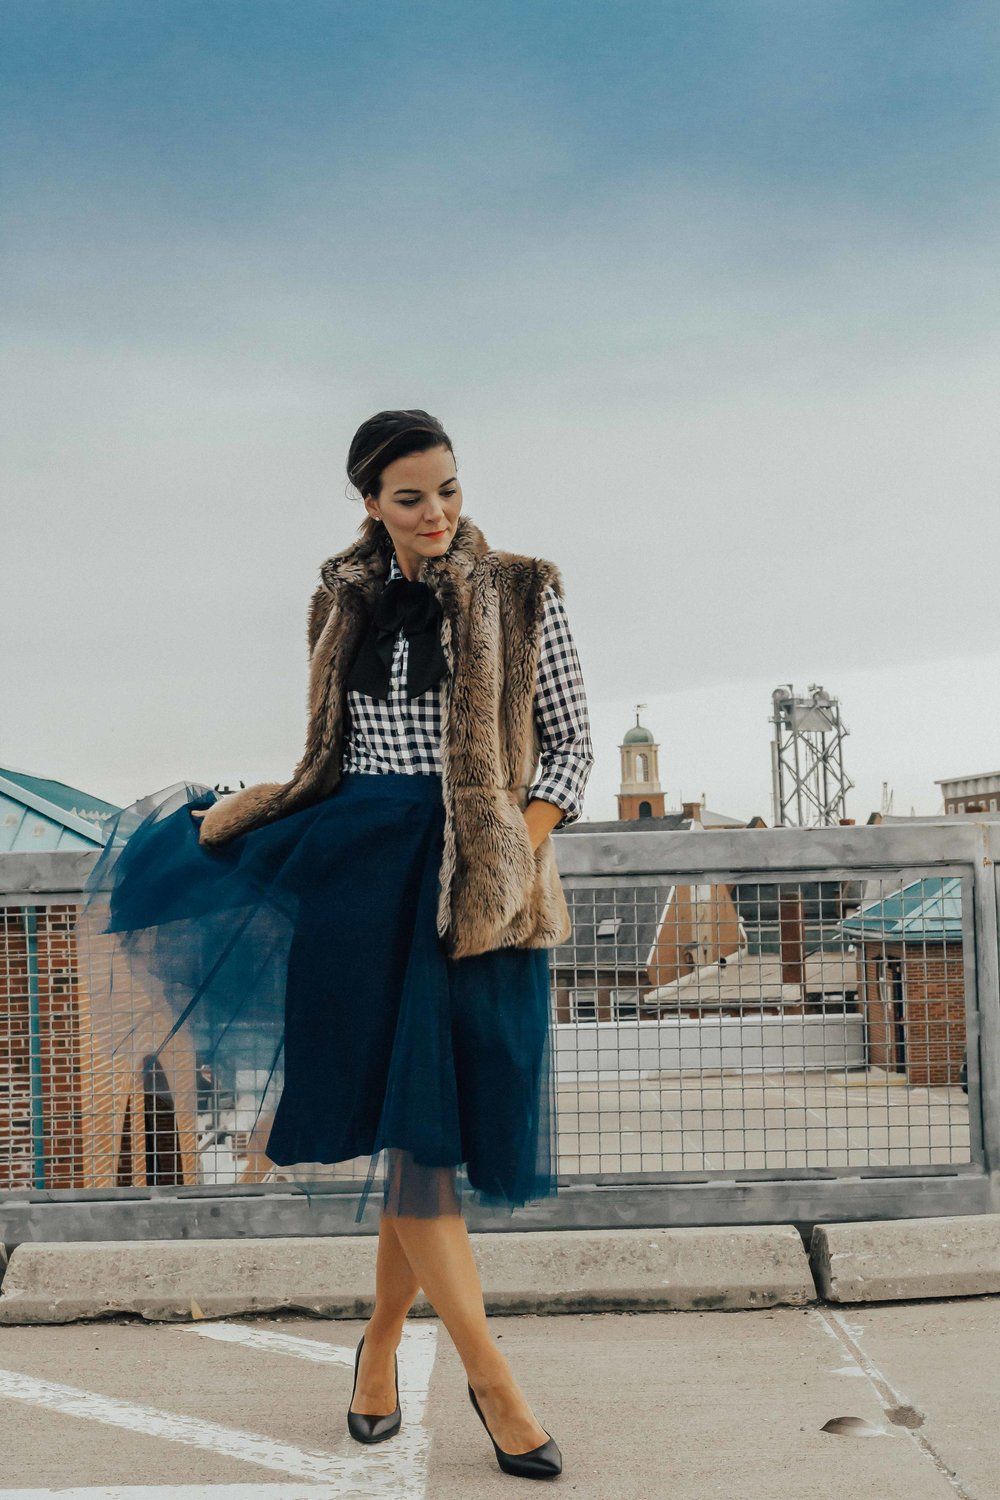 SHOP THE LOOK - TULLE SKIRT (similar here & here)FAUX FUR VEST (similar)GINGHAM SHIRTOVER-SIZED BOW TIE (similar)HEELSLIP COLOR